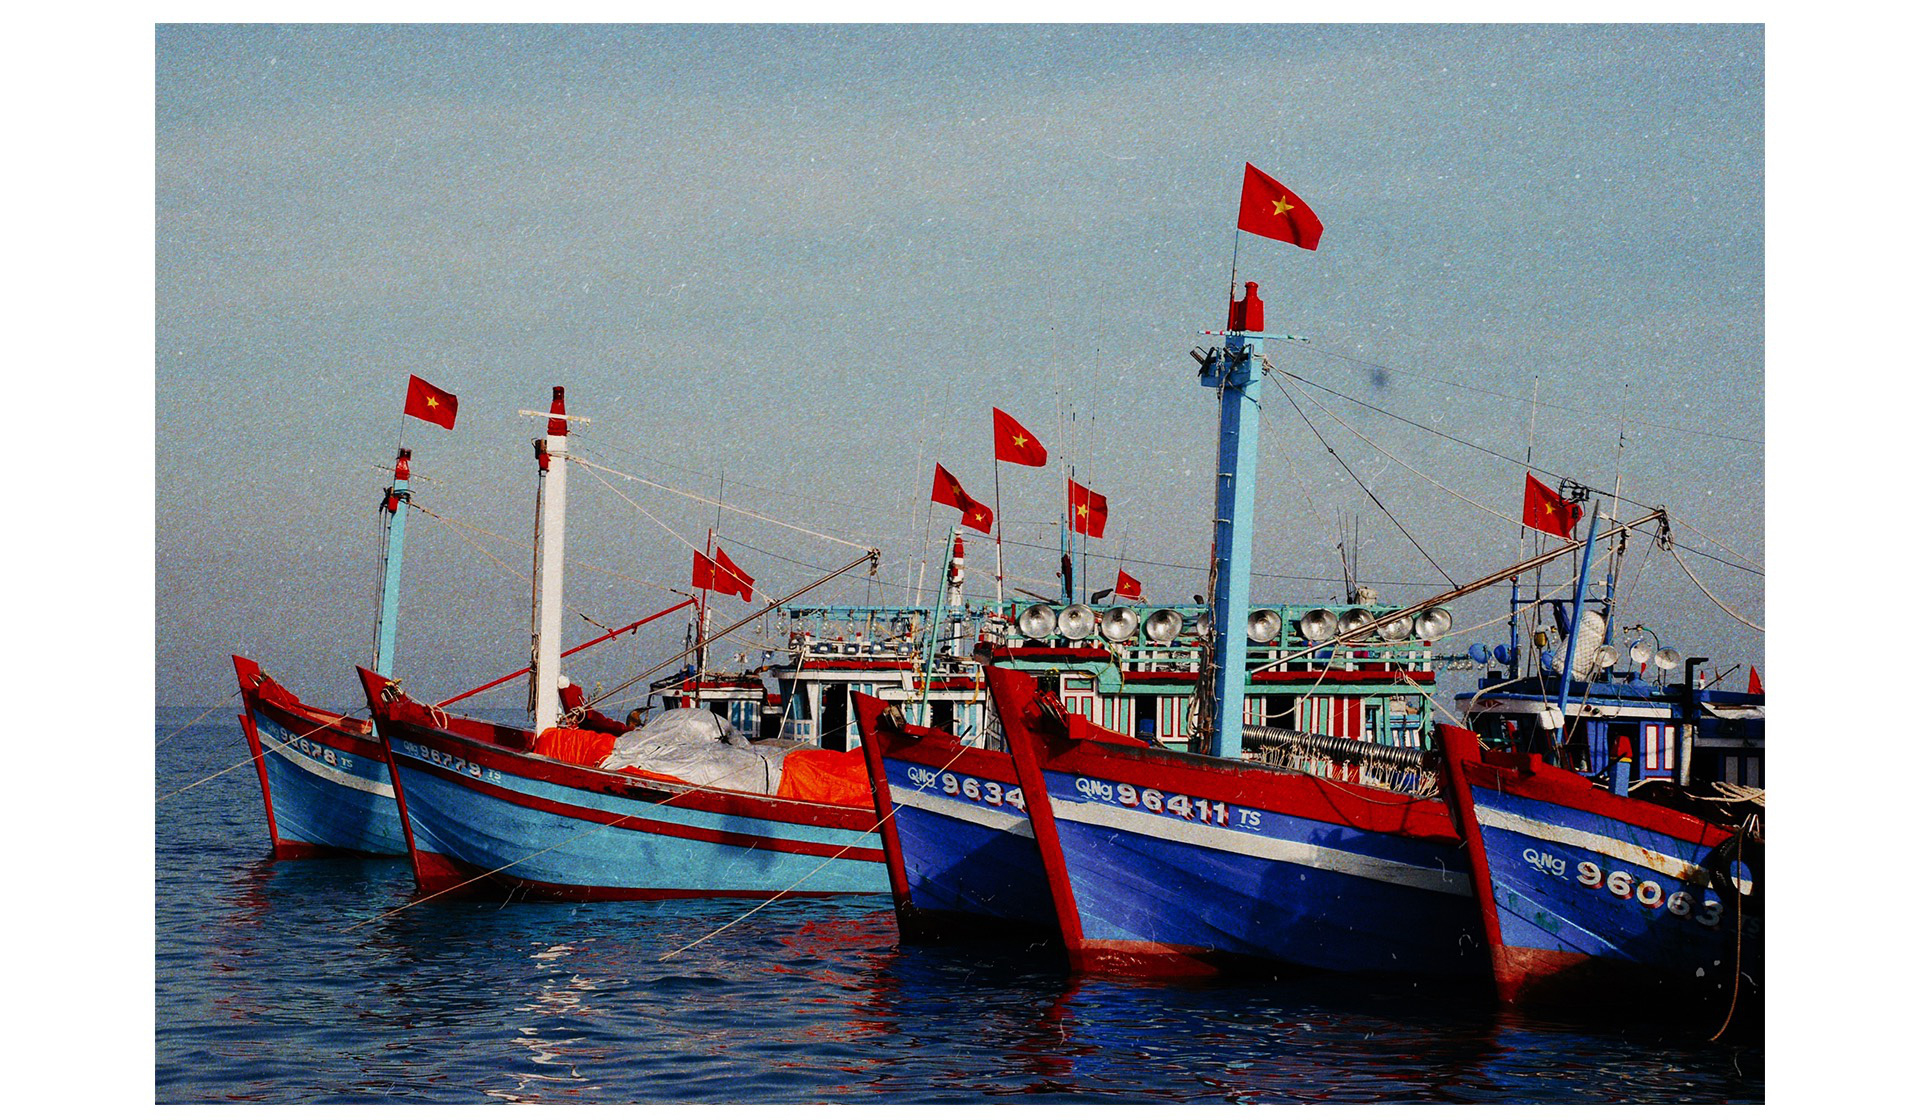 Vietnamese off-shore fishing vessels are seen near Ly Son Island off Quang Ngai Province, Vietnam. Photo: Viet Hung / Tuoi Tre